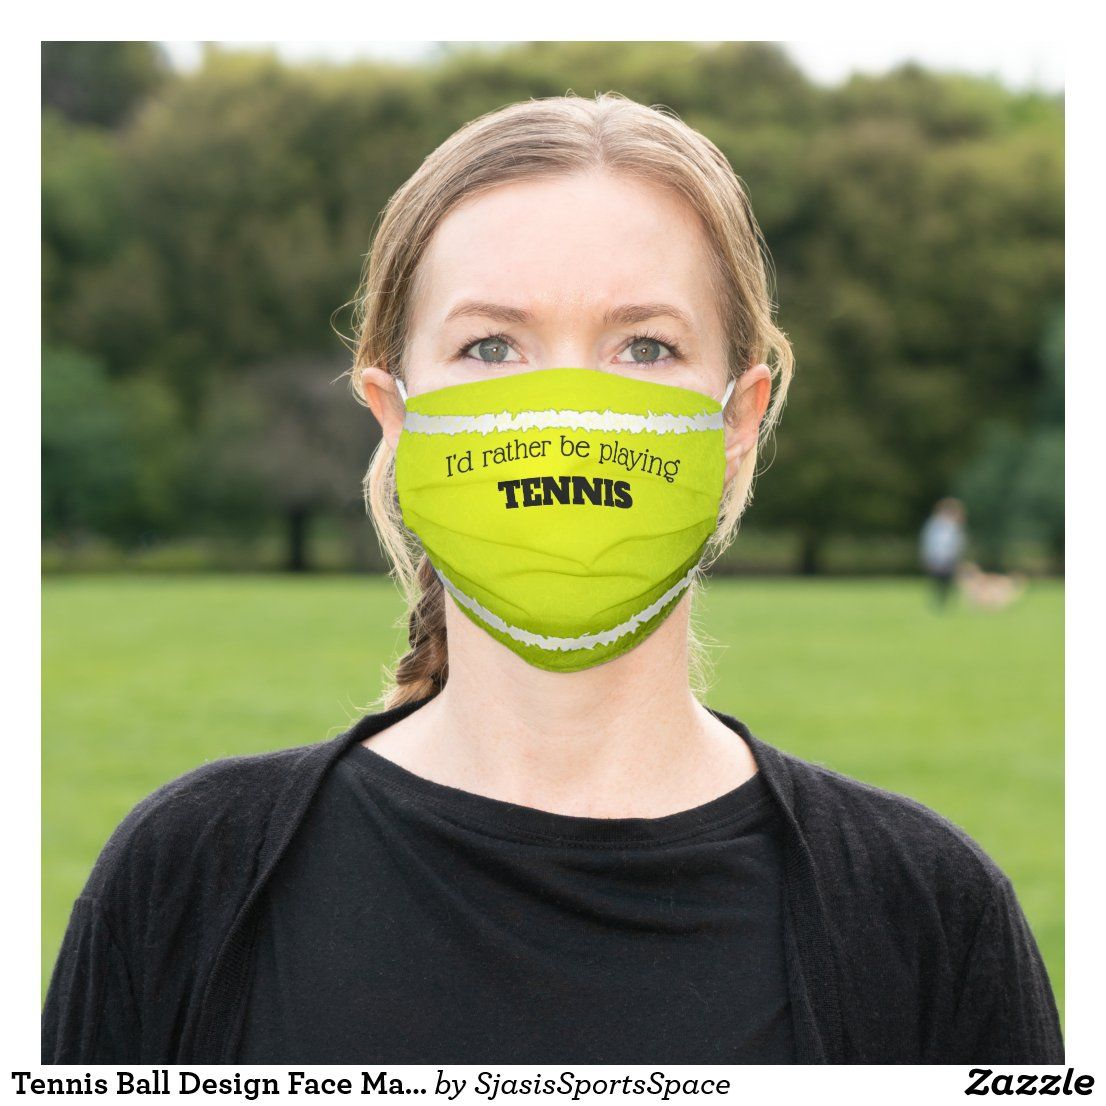 Tennis Ball Design Face Mask Zazzle Com In 2020 Mask Face Mask Face